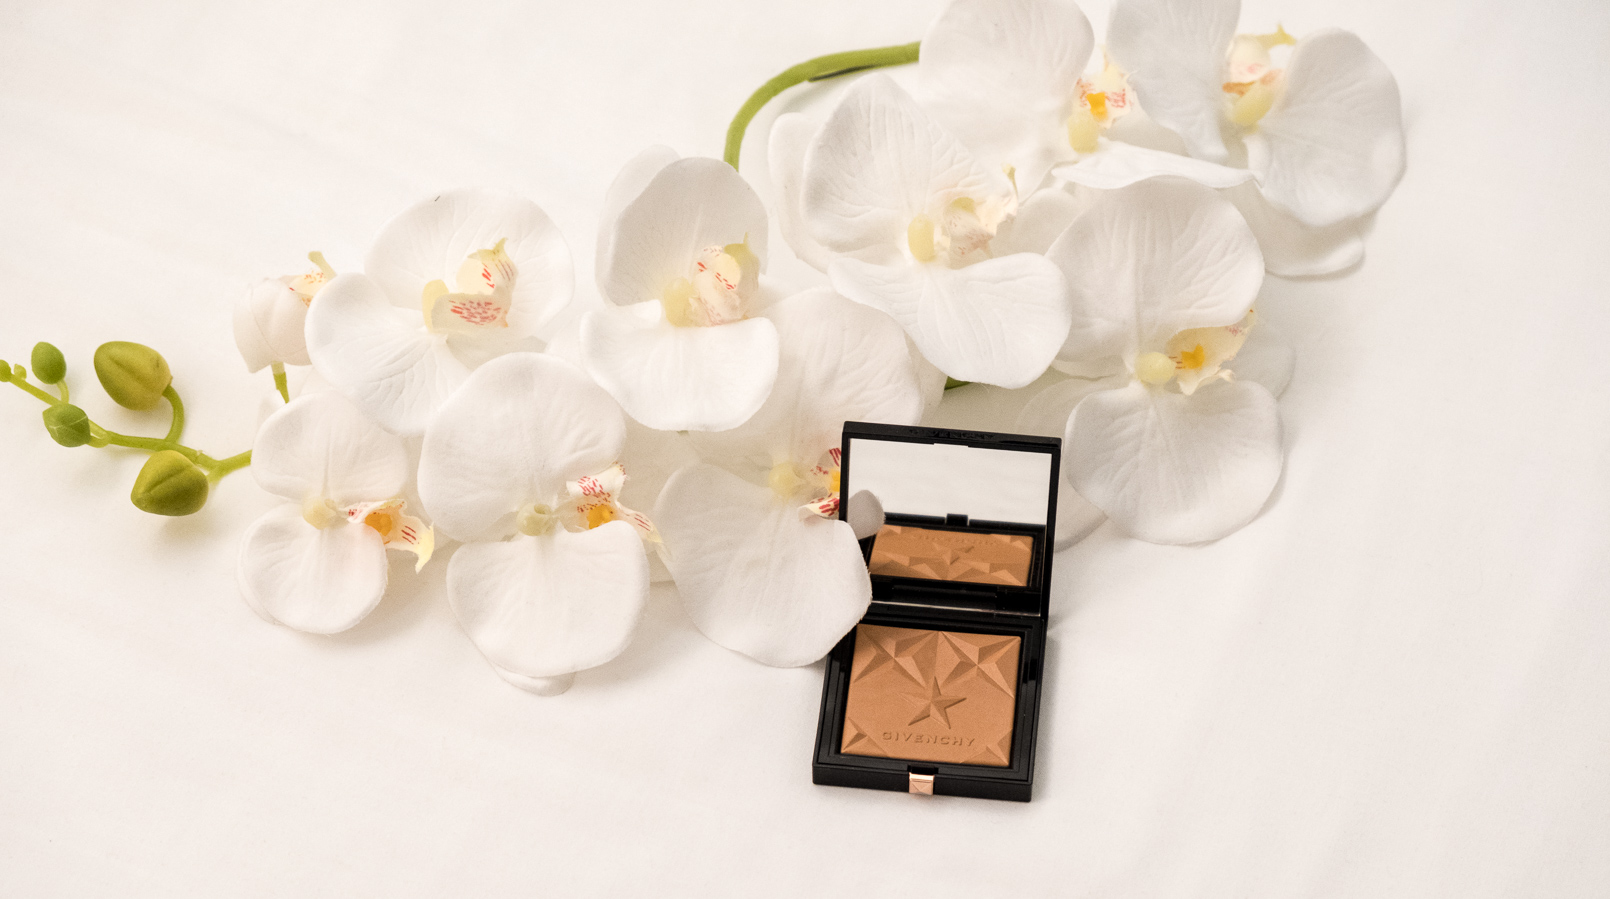 Le Fashionaire Givenchy Les Saisons: The healthy glow powder you need now givenchy healthy glow powder stars les saisons givenchy black logo box 3647F EN